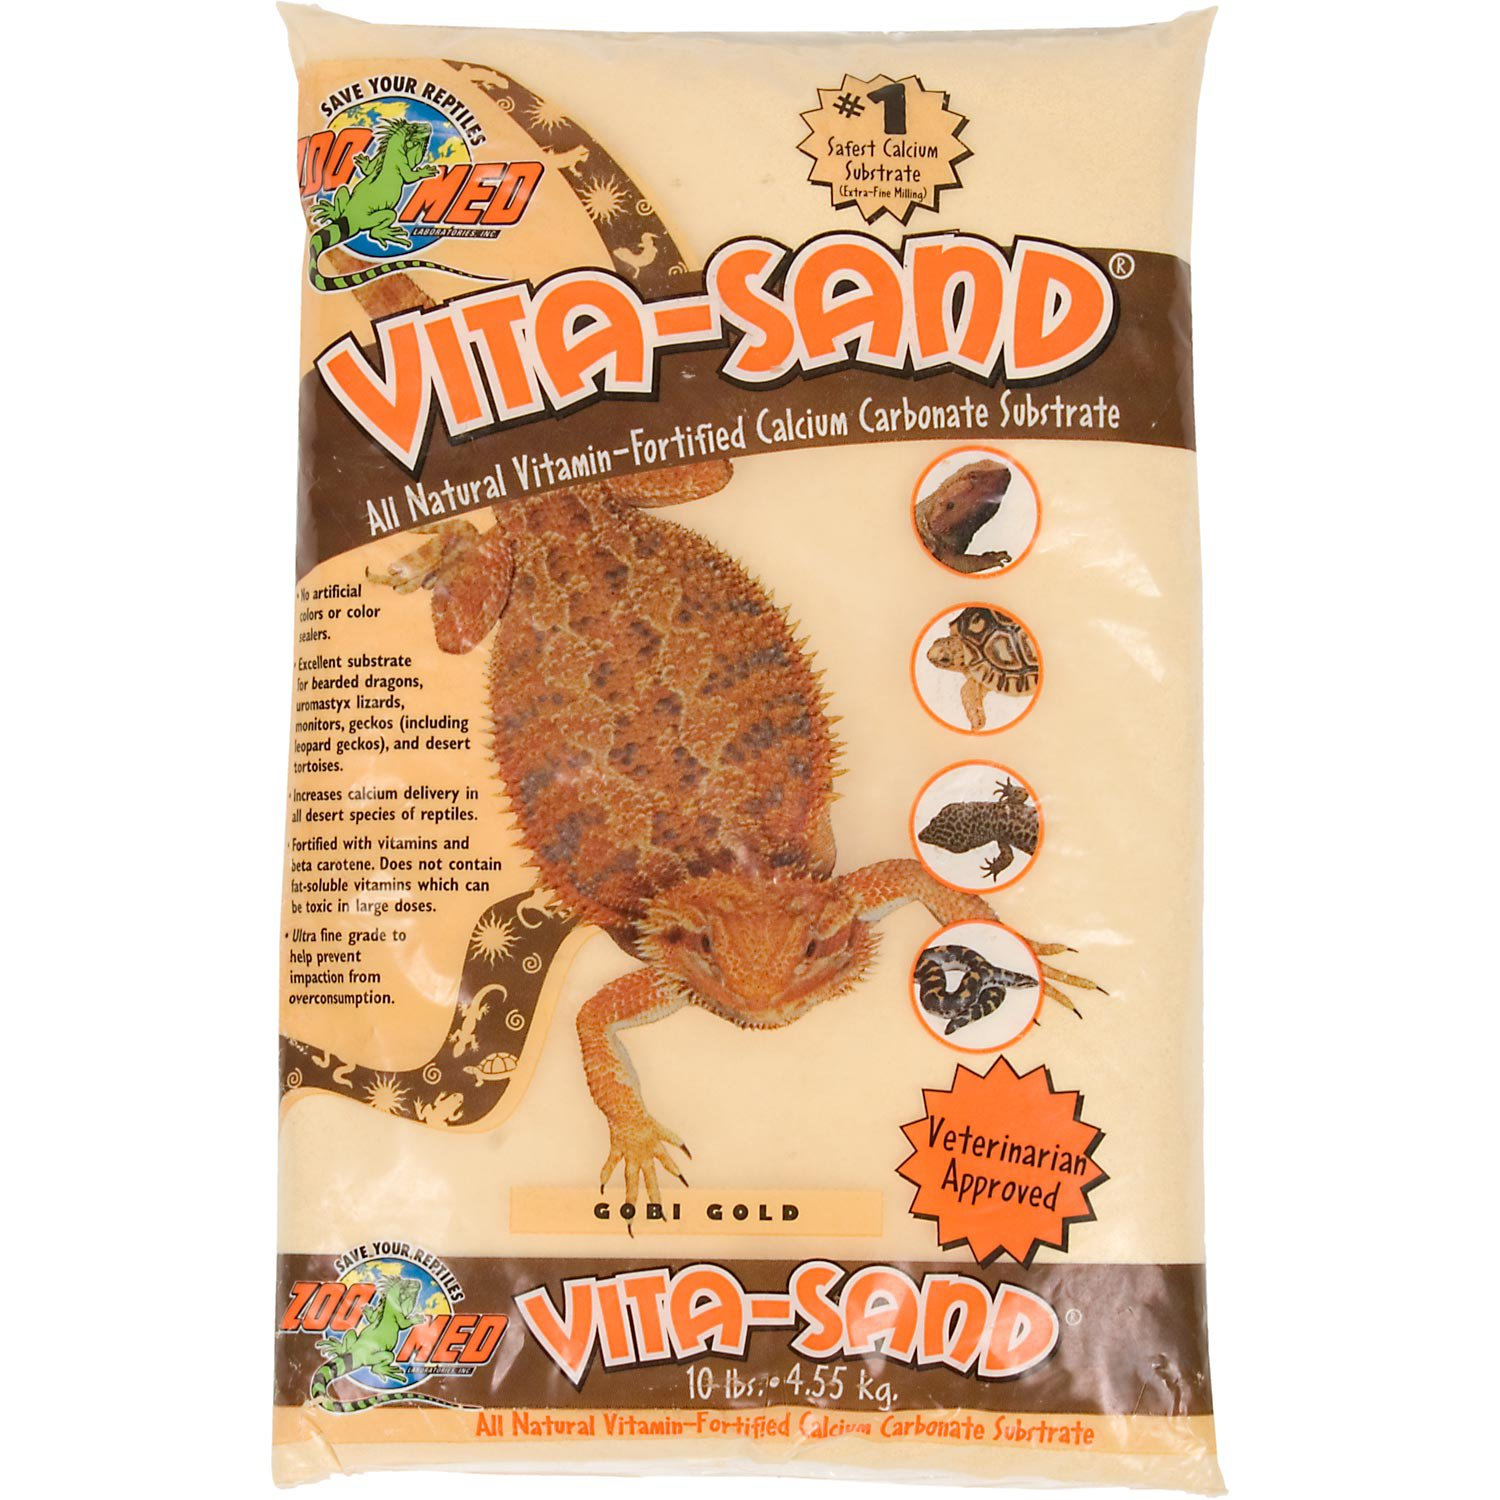 Zoo Med Vita Sand in Gobi Gold